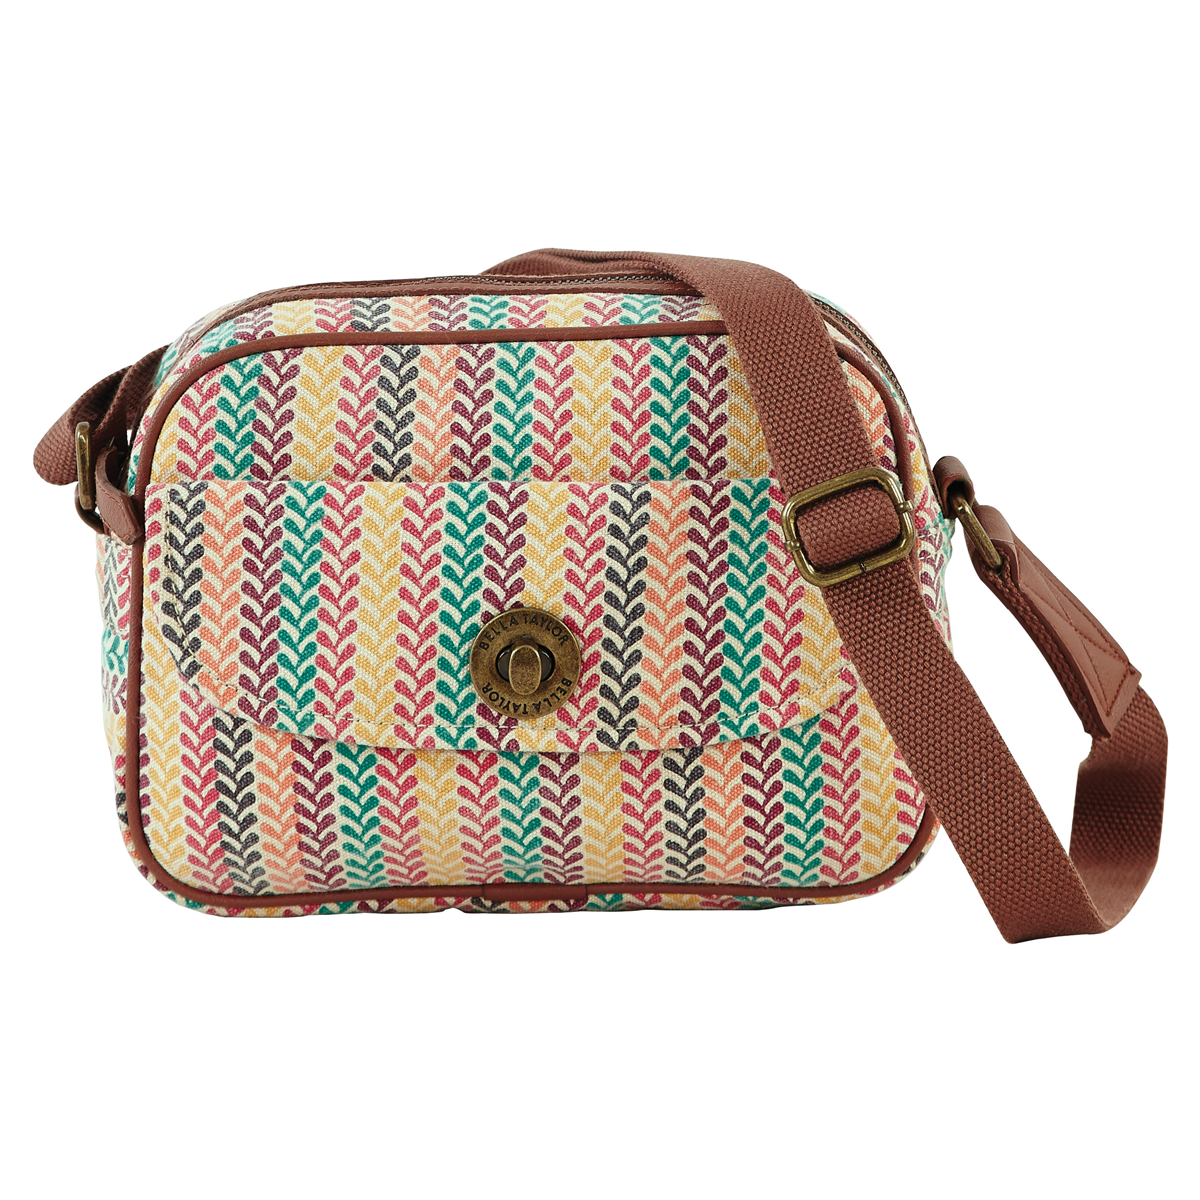 Bella Taylor Pacific Grove Canvas Mini Messenger Crossbody. Just like the laid-back beaches of the West Coast, the Pacific Grove Canvas collection offers casual but fresh style with slightly distressed turquoise, yellow, black, plum, coral and fuchsia colors on a crème canvas base.  Shop The Handbag Store online at www.shopthehandbagstore.com.